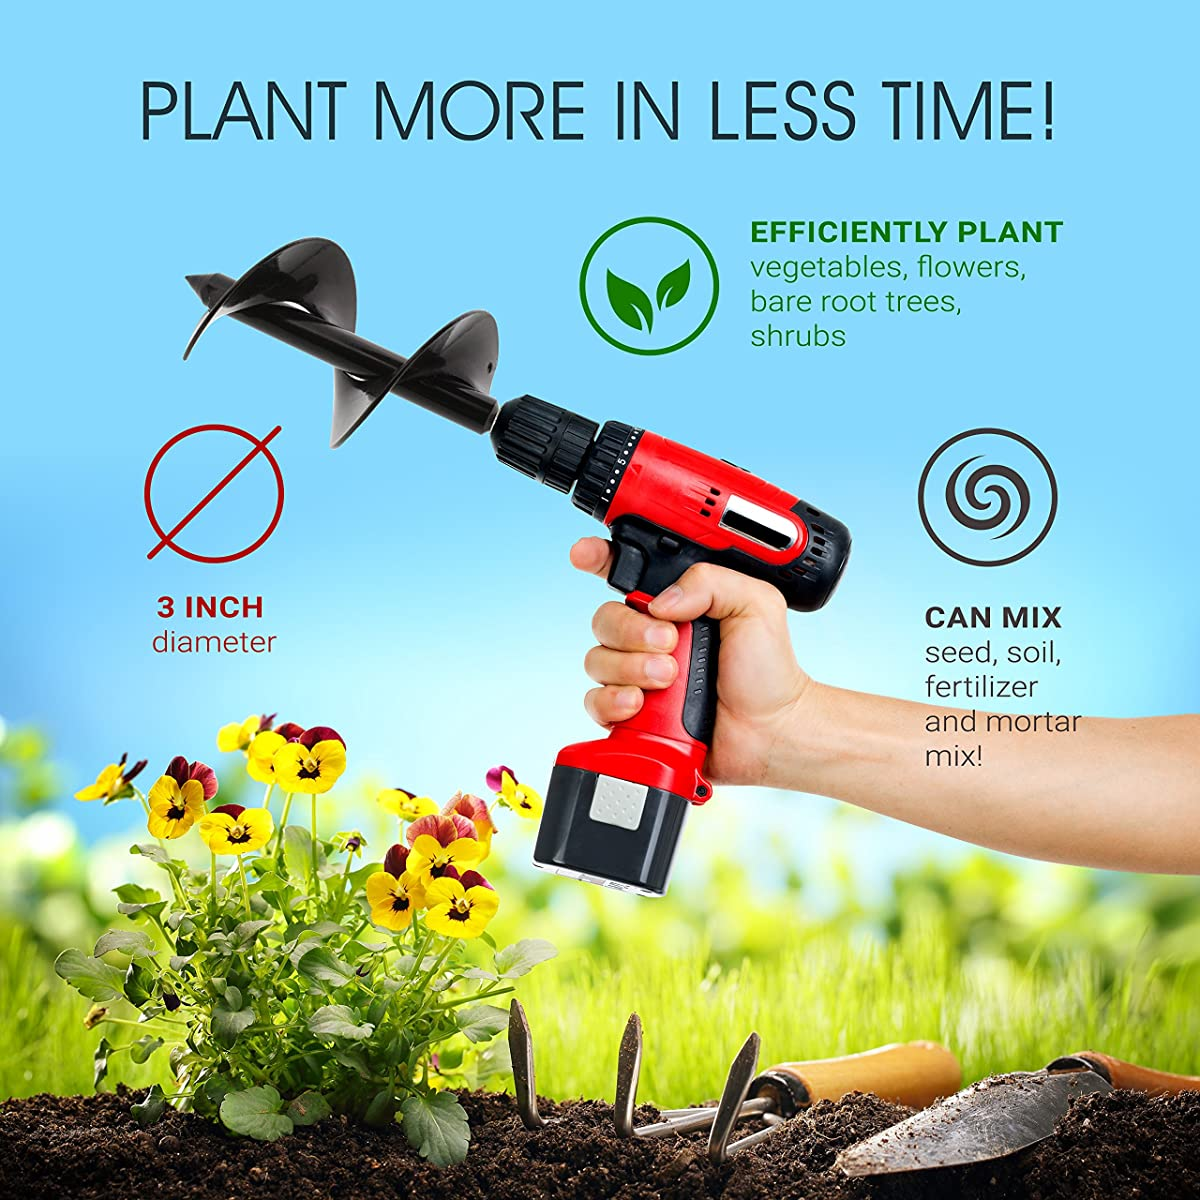 """7Penn Garden Plant Flower Bulb Auger 3"""" x 7"""" Inch Rapid Planter – Post or Umbrella Hole Digger for 3/8"""" Hex Drive Drill"""